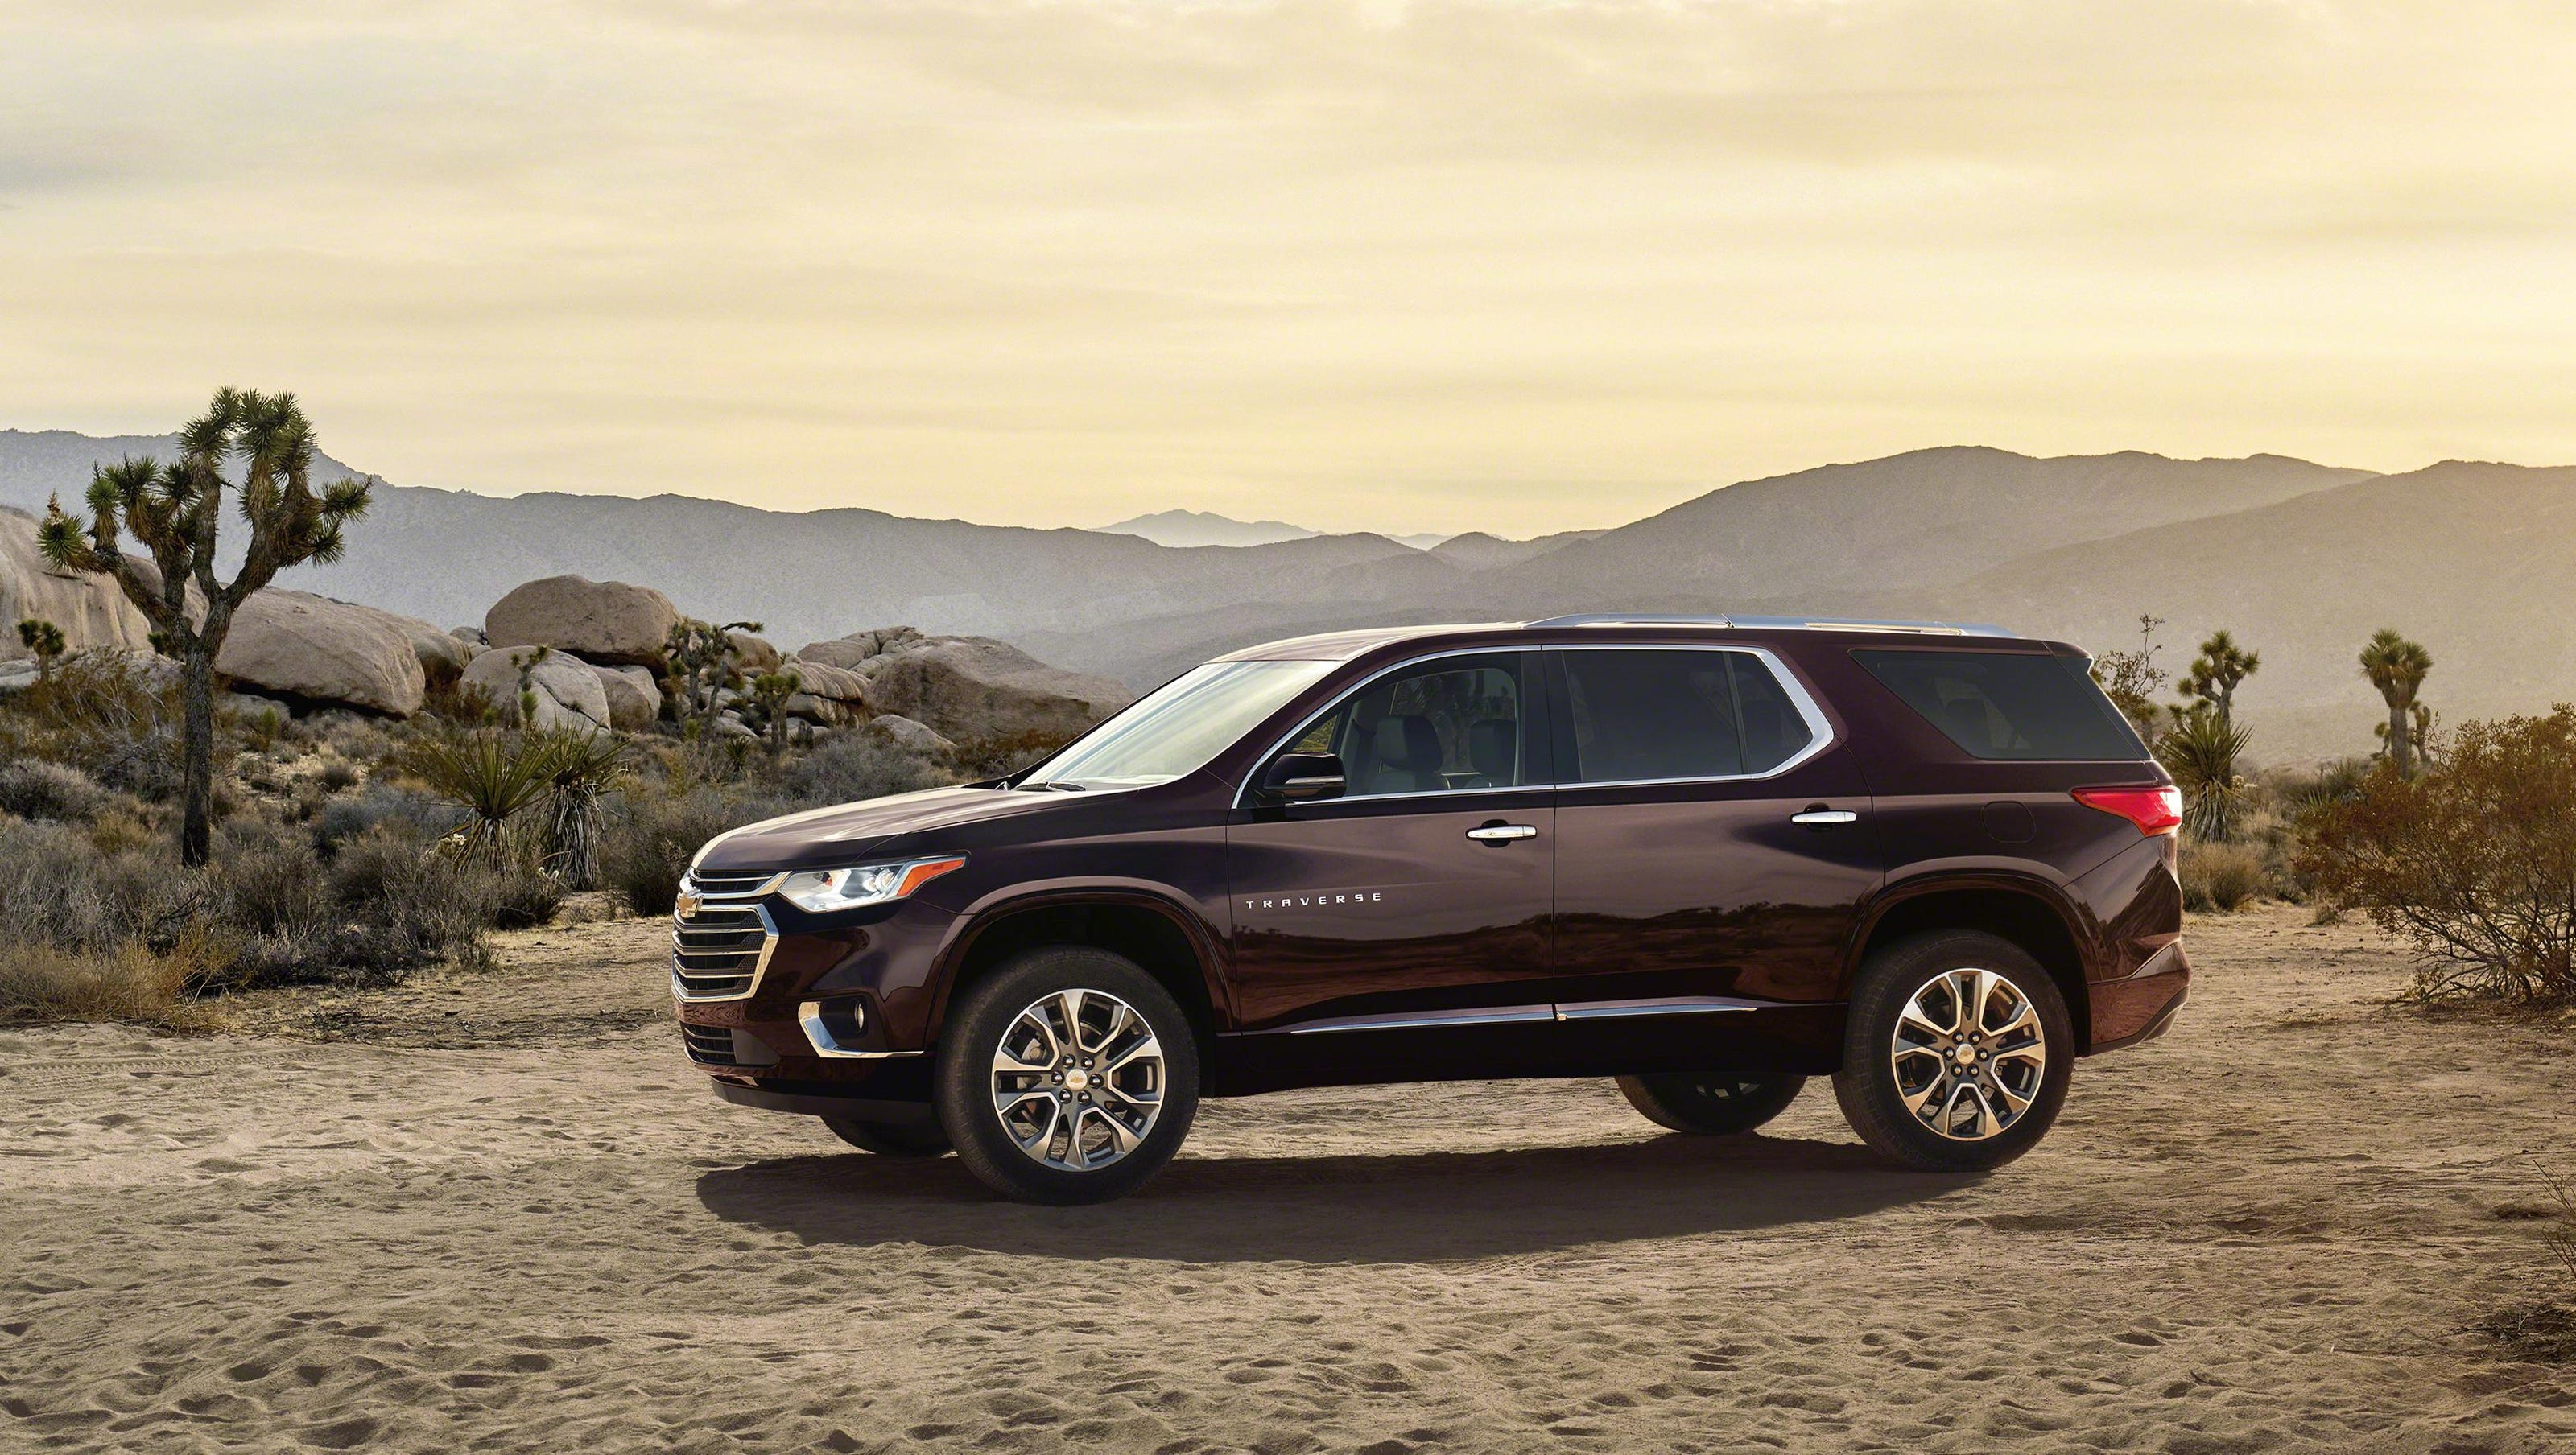 2018 Chevy Traverse s new looks improved mpg